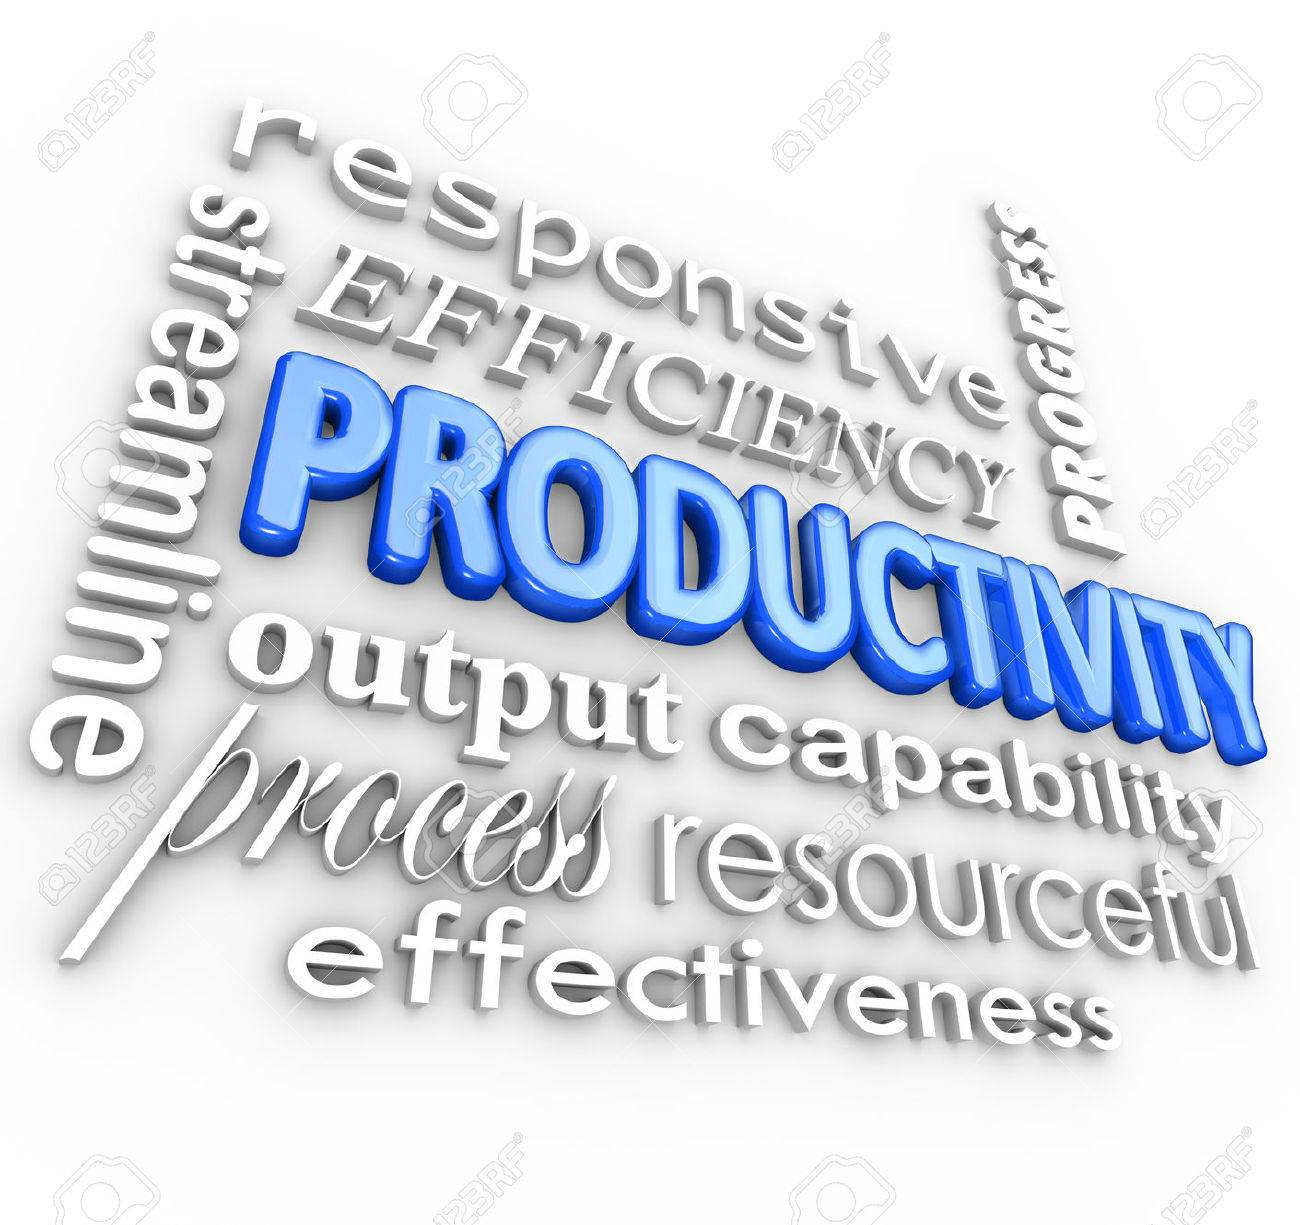 productivity word and related terms such as streamline responsive